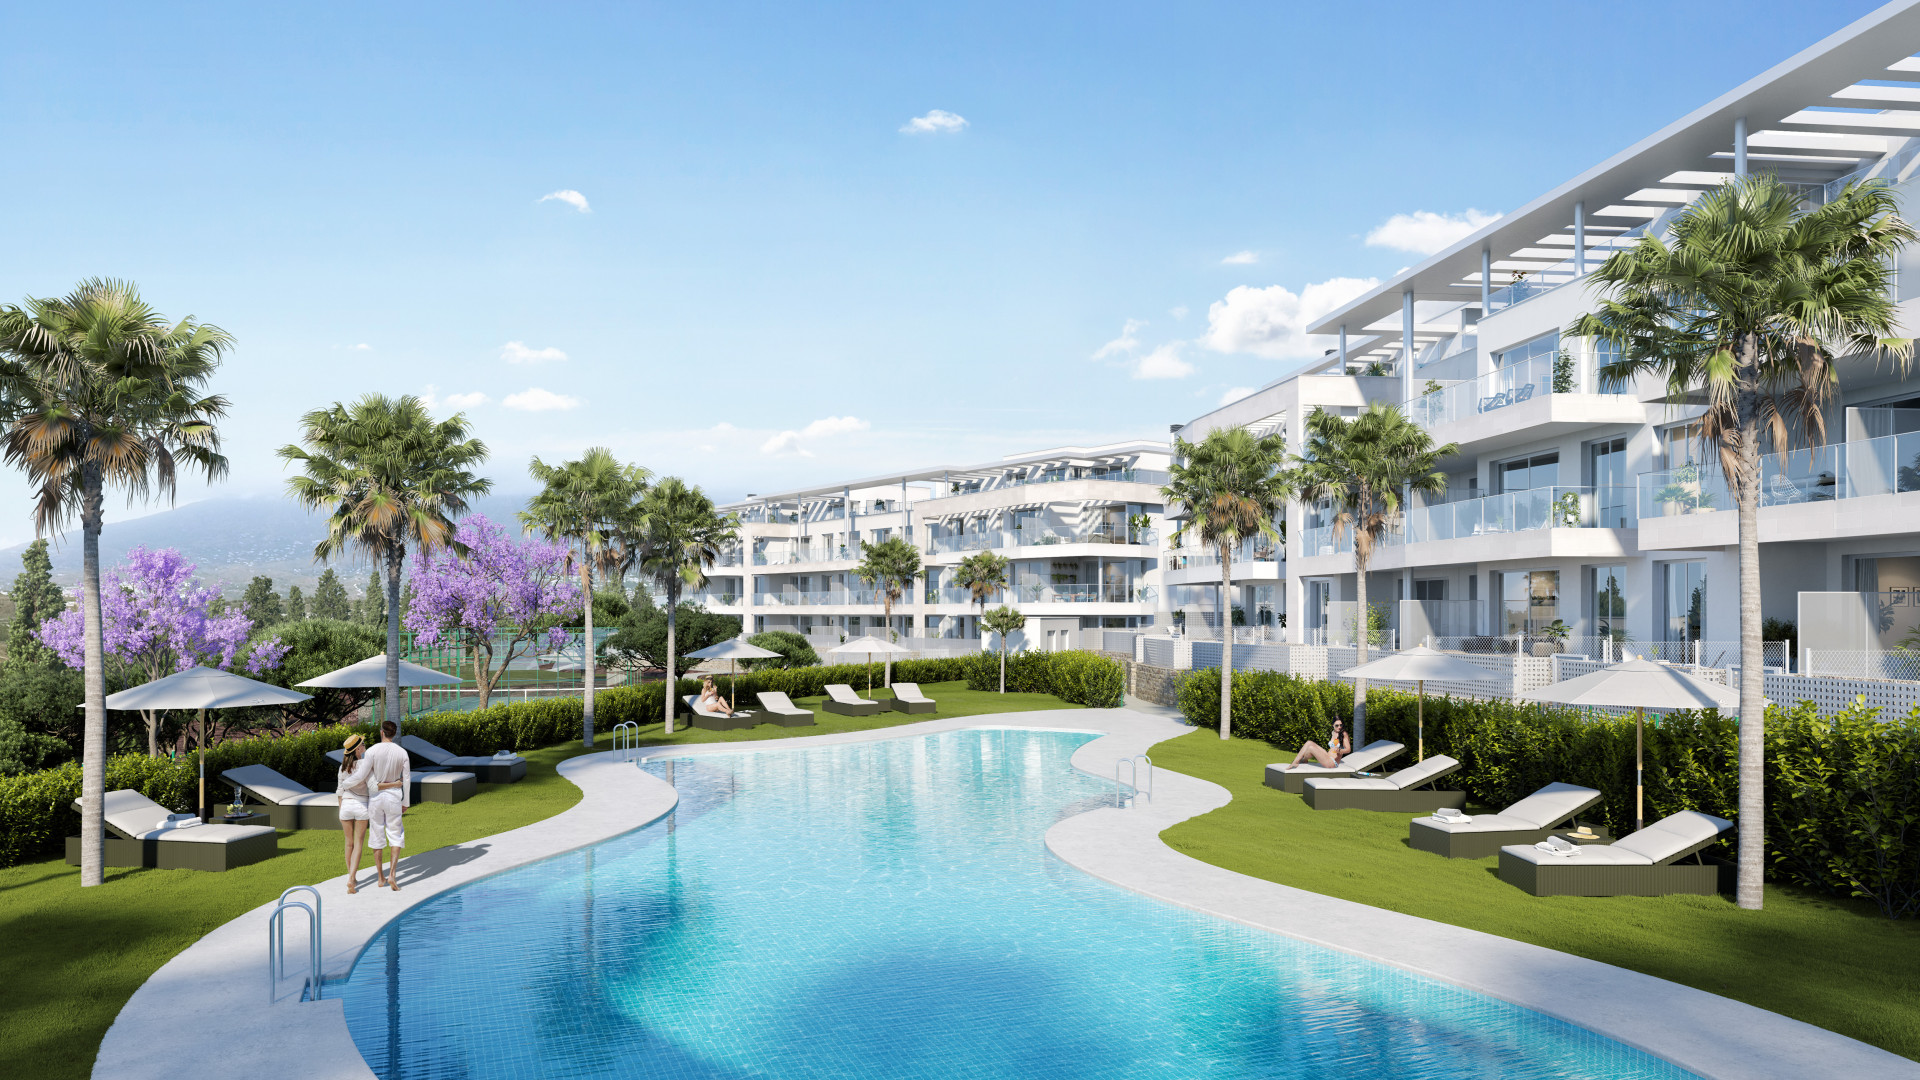 Impressive new complex on a perfect location with mostly seaviews in Mijas Costa.PL102